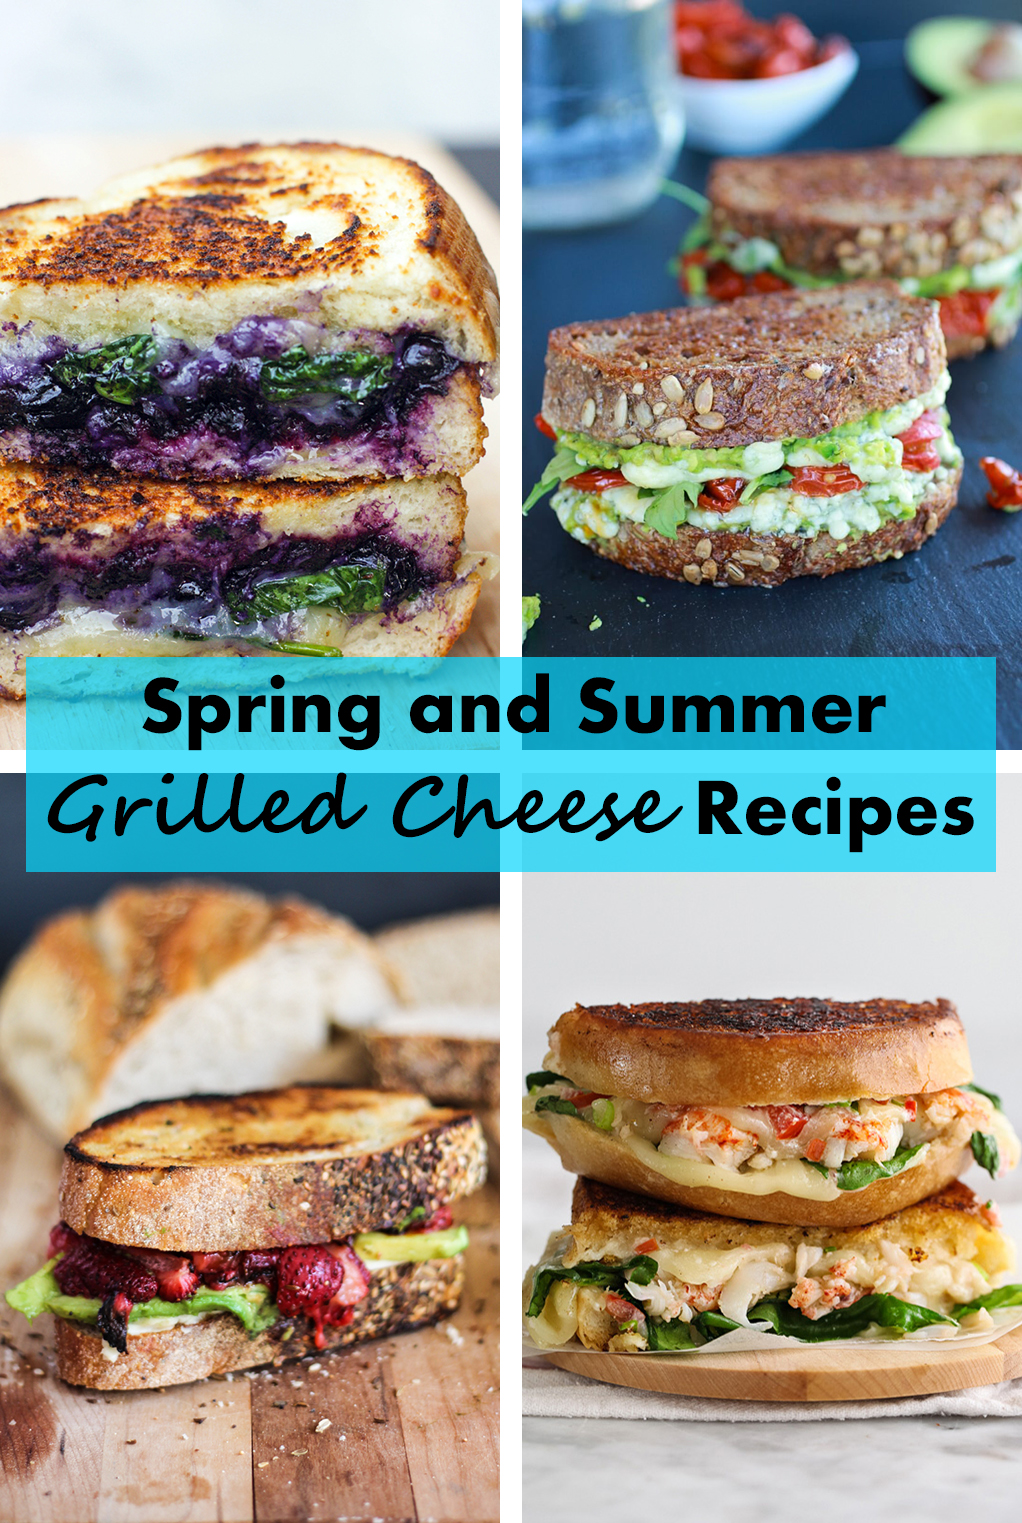 Spring and Summer Grilled Cheese Recipes | https://www.roseclearfield.com